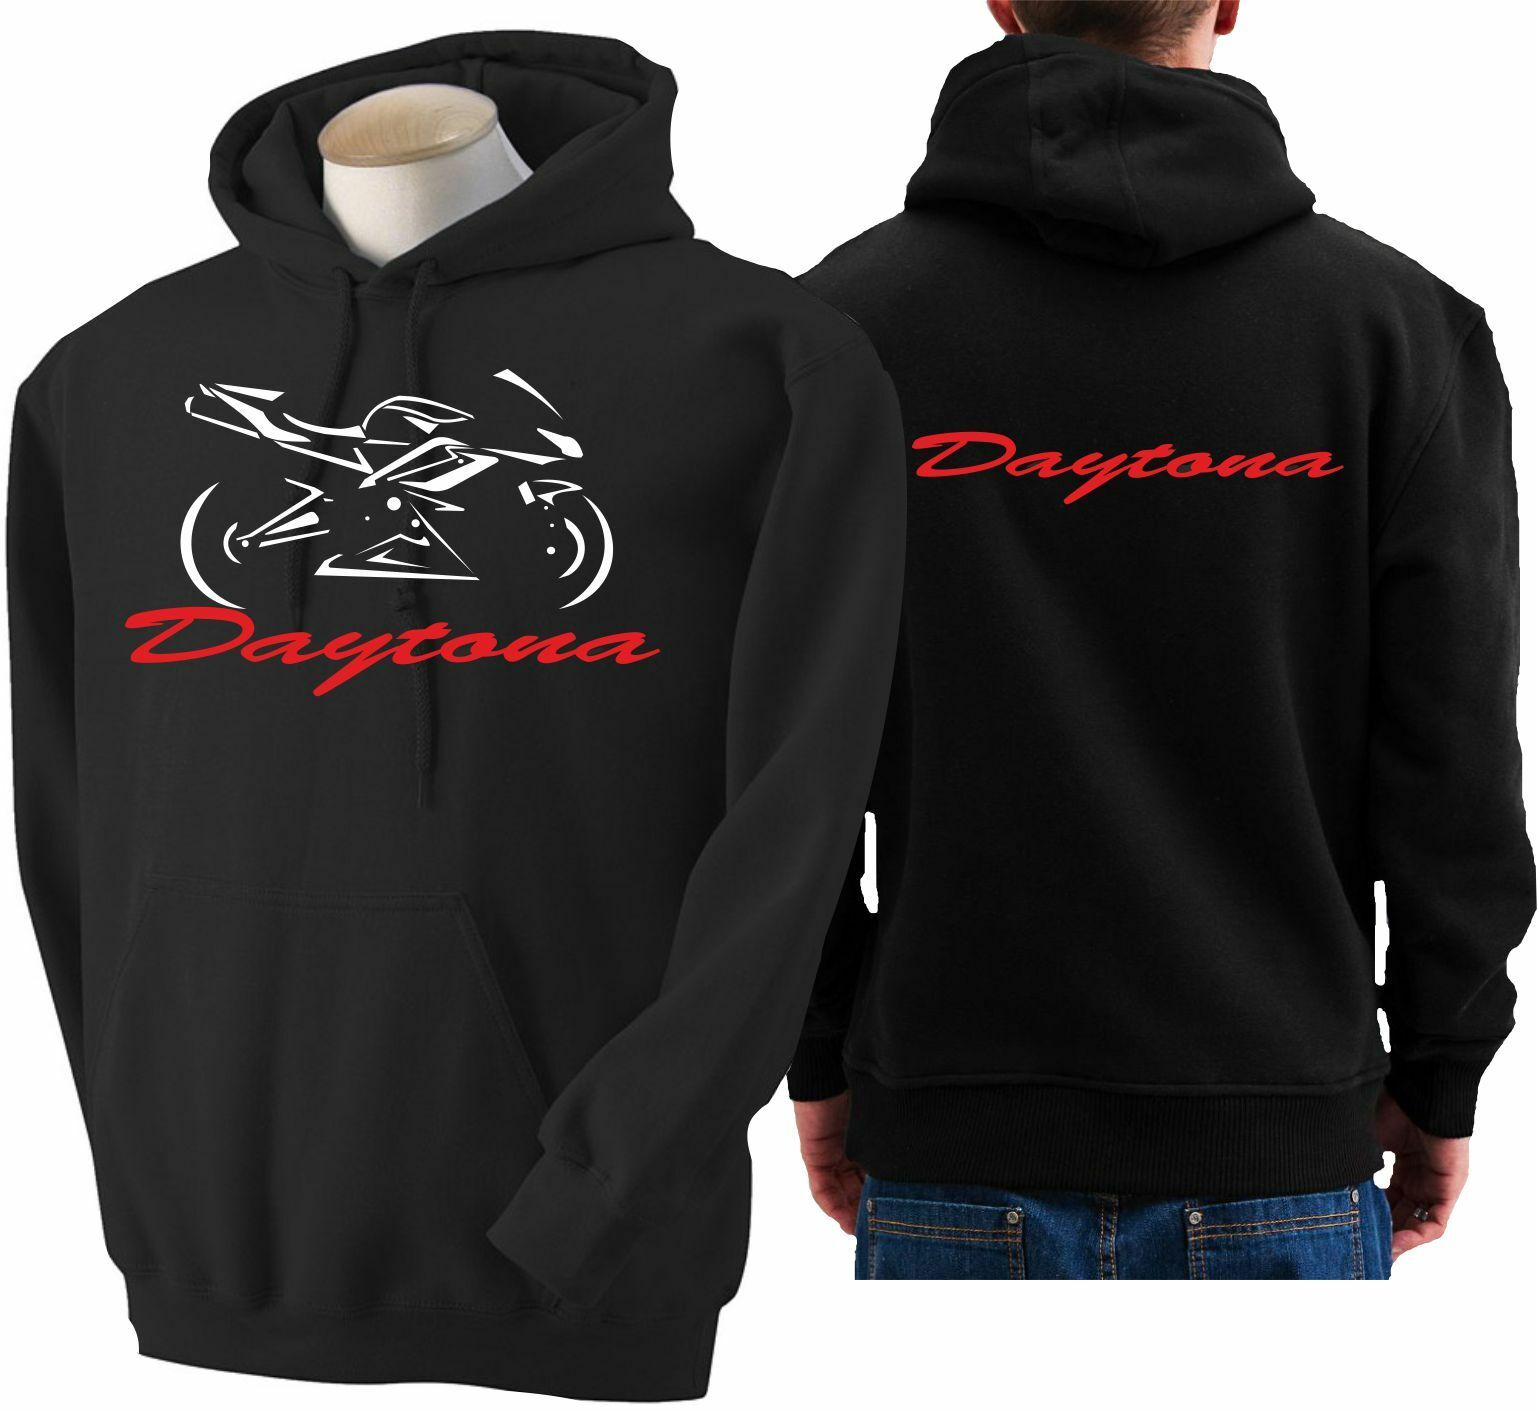 Hoodie for bike TRIUMPH Daytona 675 sweatshirt hoody Sudadera moto sweater